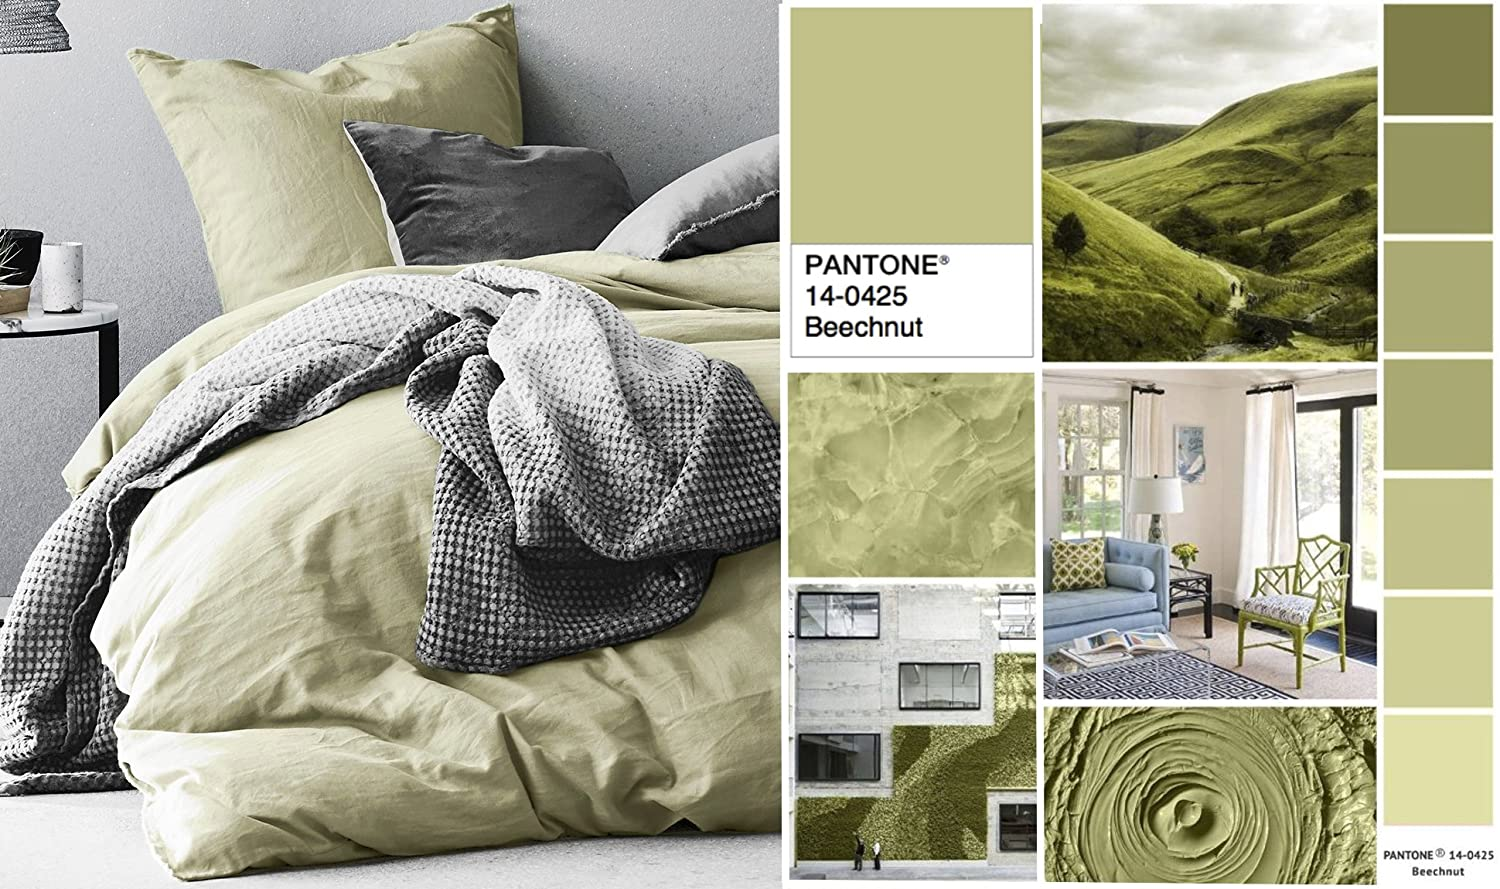 Eikei Washed Cotton Chambray Duvet Cover Solid Color Casual Modern Style Bedding Set Queen, Lime Olive